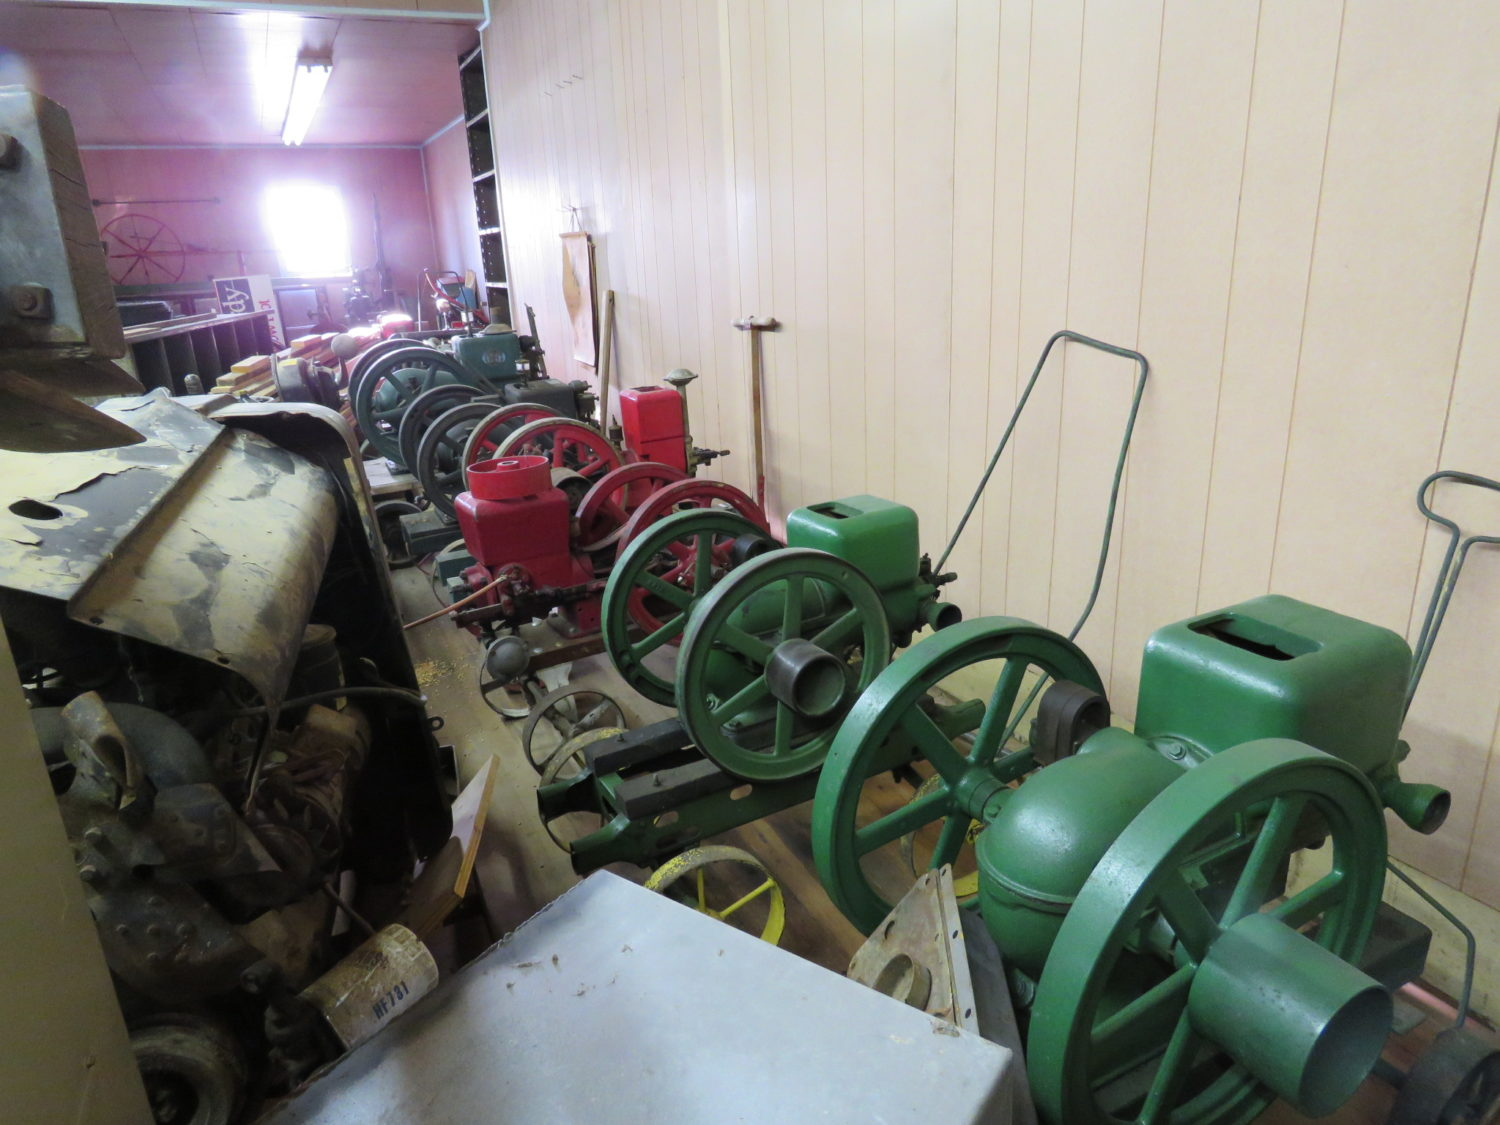 Day 1-Antique Tractors, Stationary Engines & More! The Bob Smith